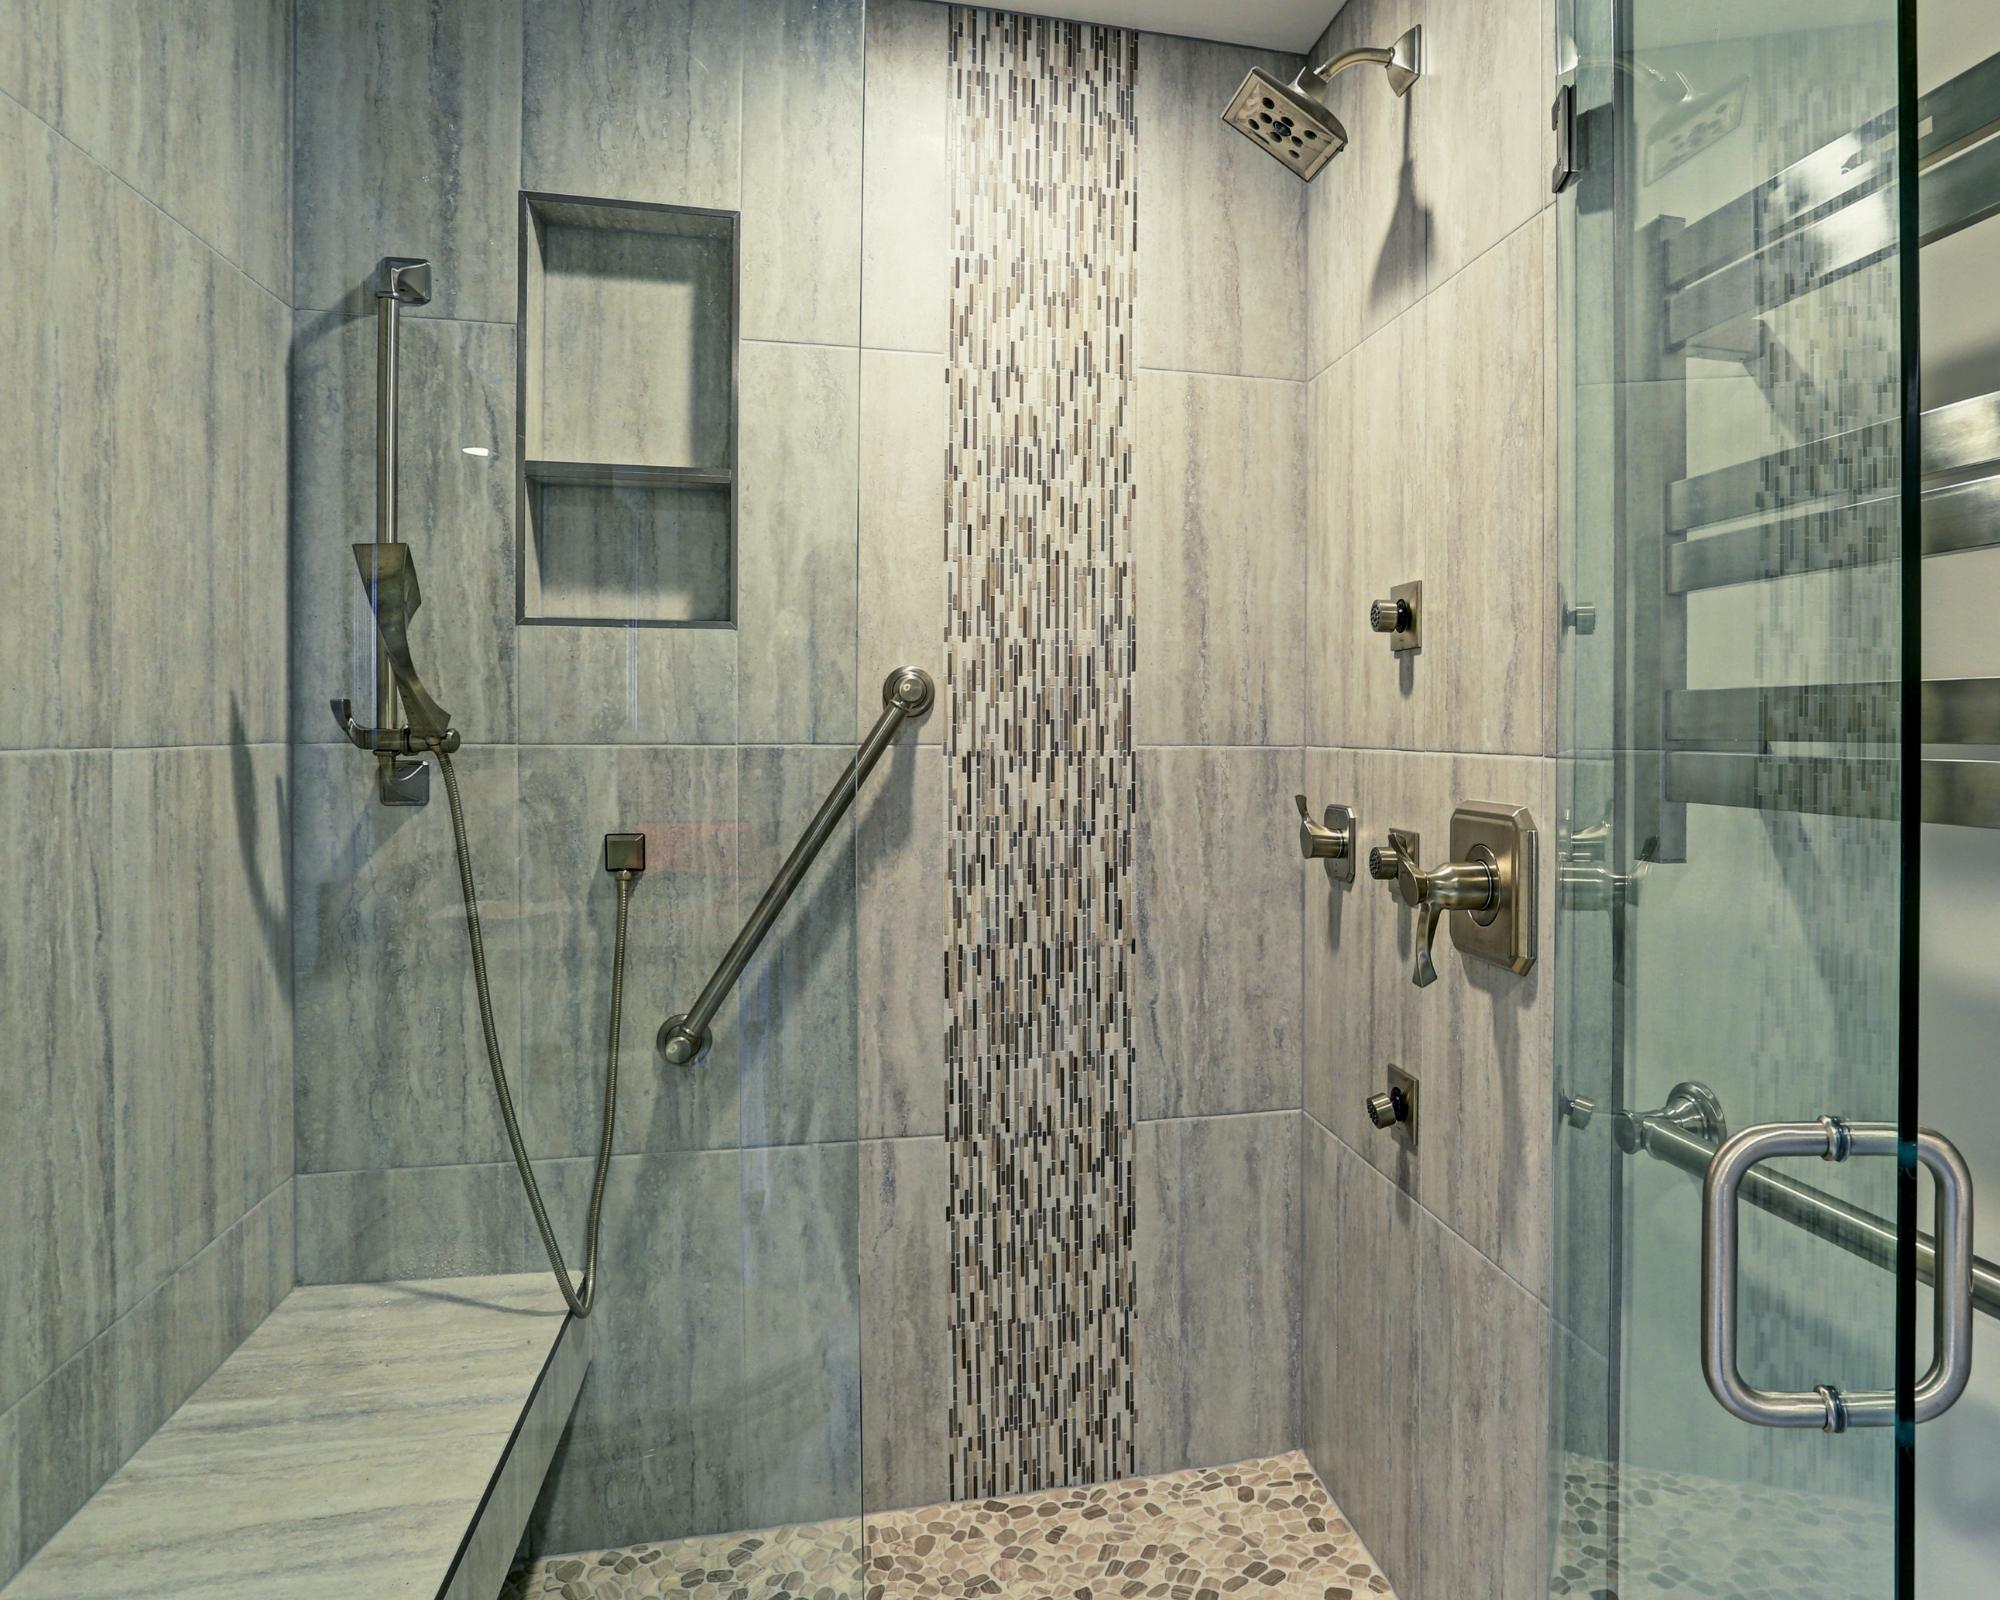 Cost breakdown to install a tile shower